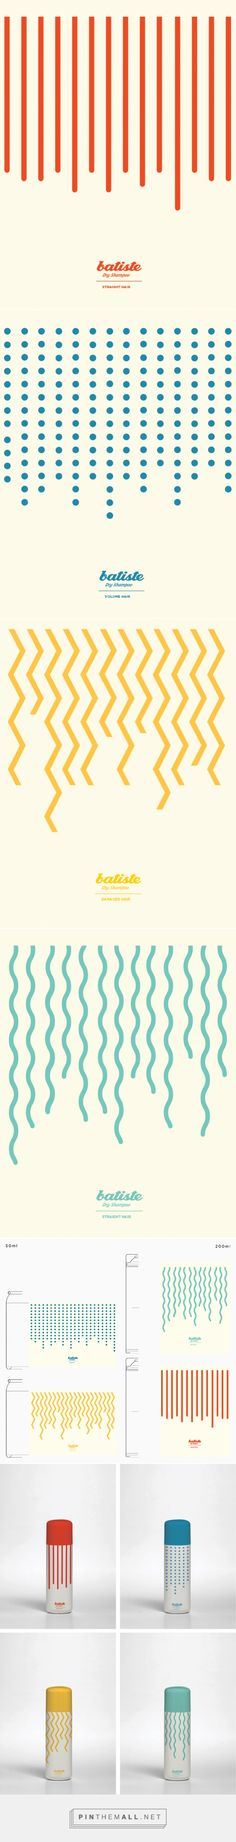 Batiste dry shampoo on Behance by Jara Domínguez curated by Packaging Diva PD. How fun is this packaging design?